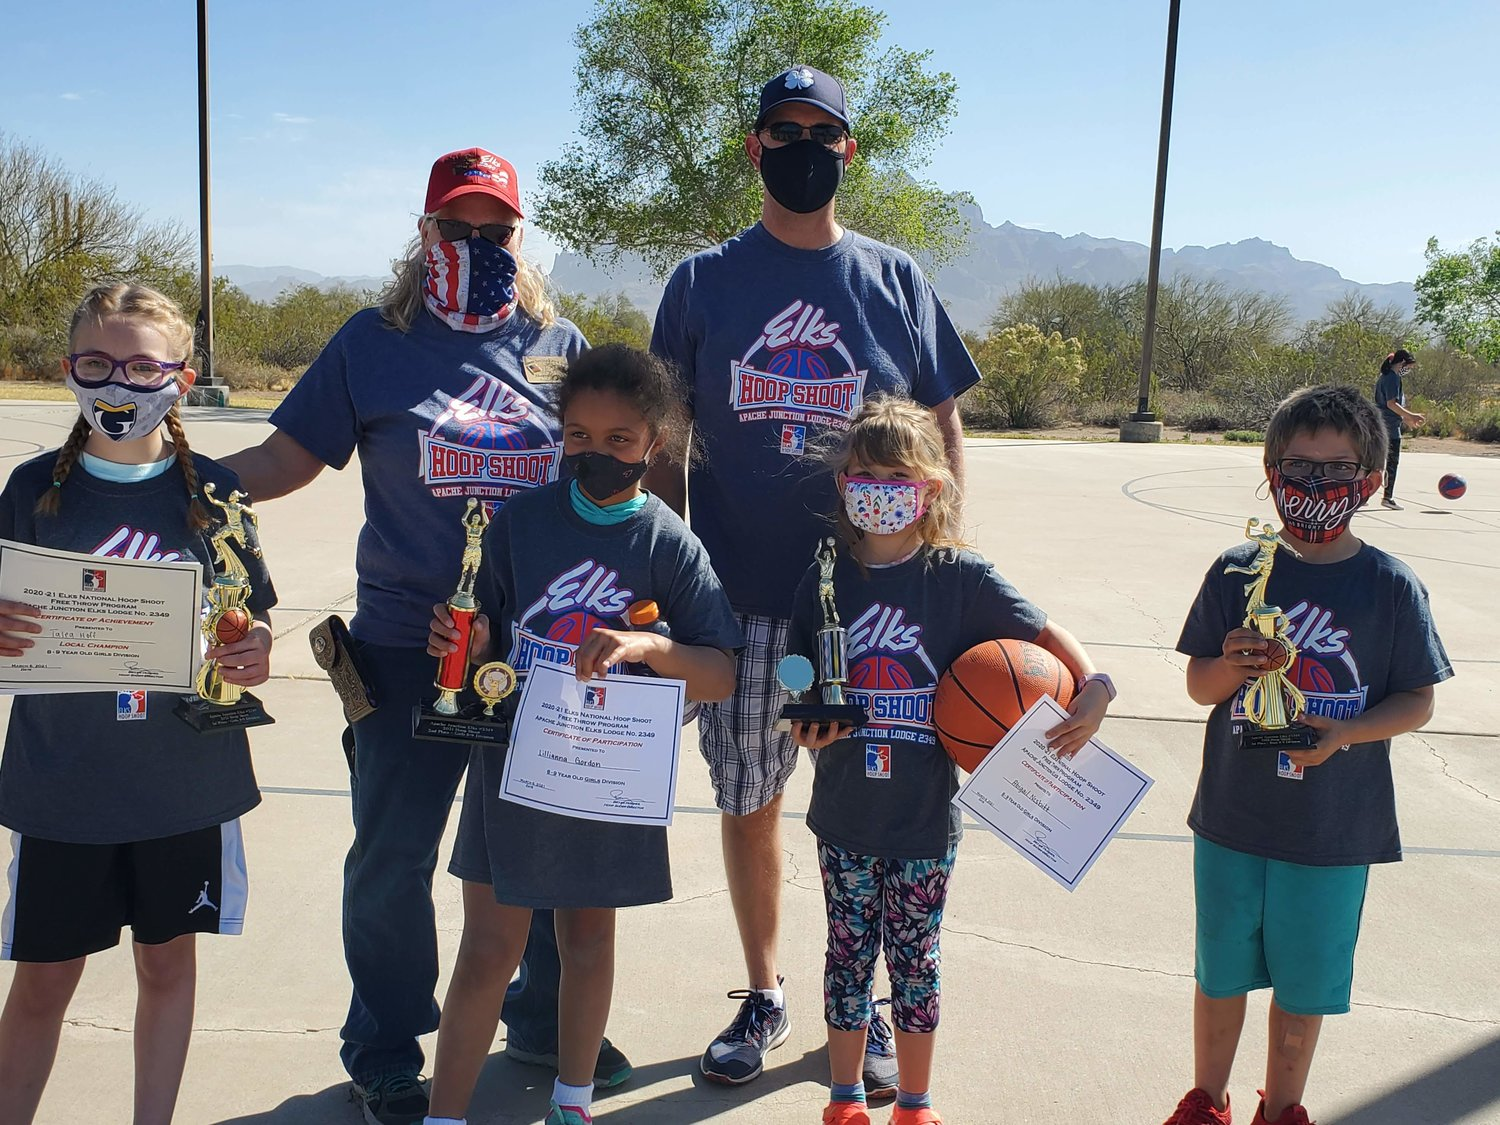 Front row, from left, in the Girls 8-9 Division, Talea Hoff finished in first place, Lillianna Gordon in second place and Abigail Nesbitt in third place. In the Boys 8-9 Division, James Danison finished in first place at the Hoop Shoot hosted by Apache Junction Elks Lodge No. 2349.